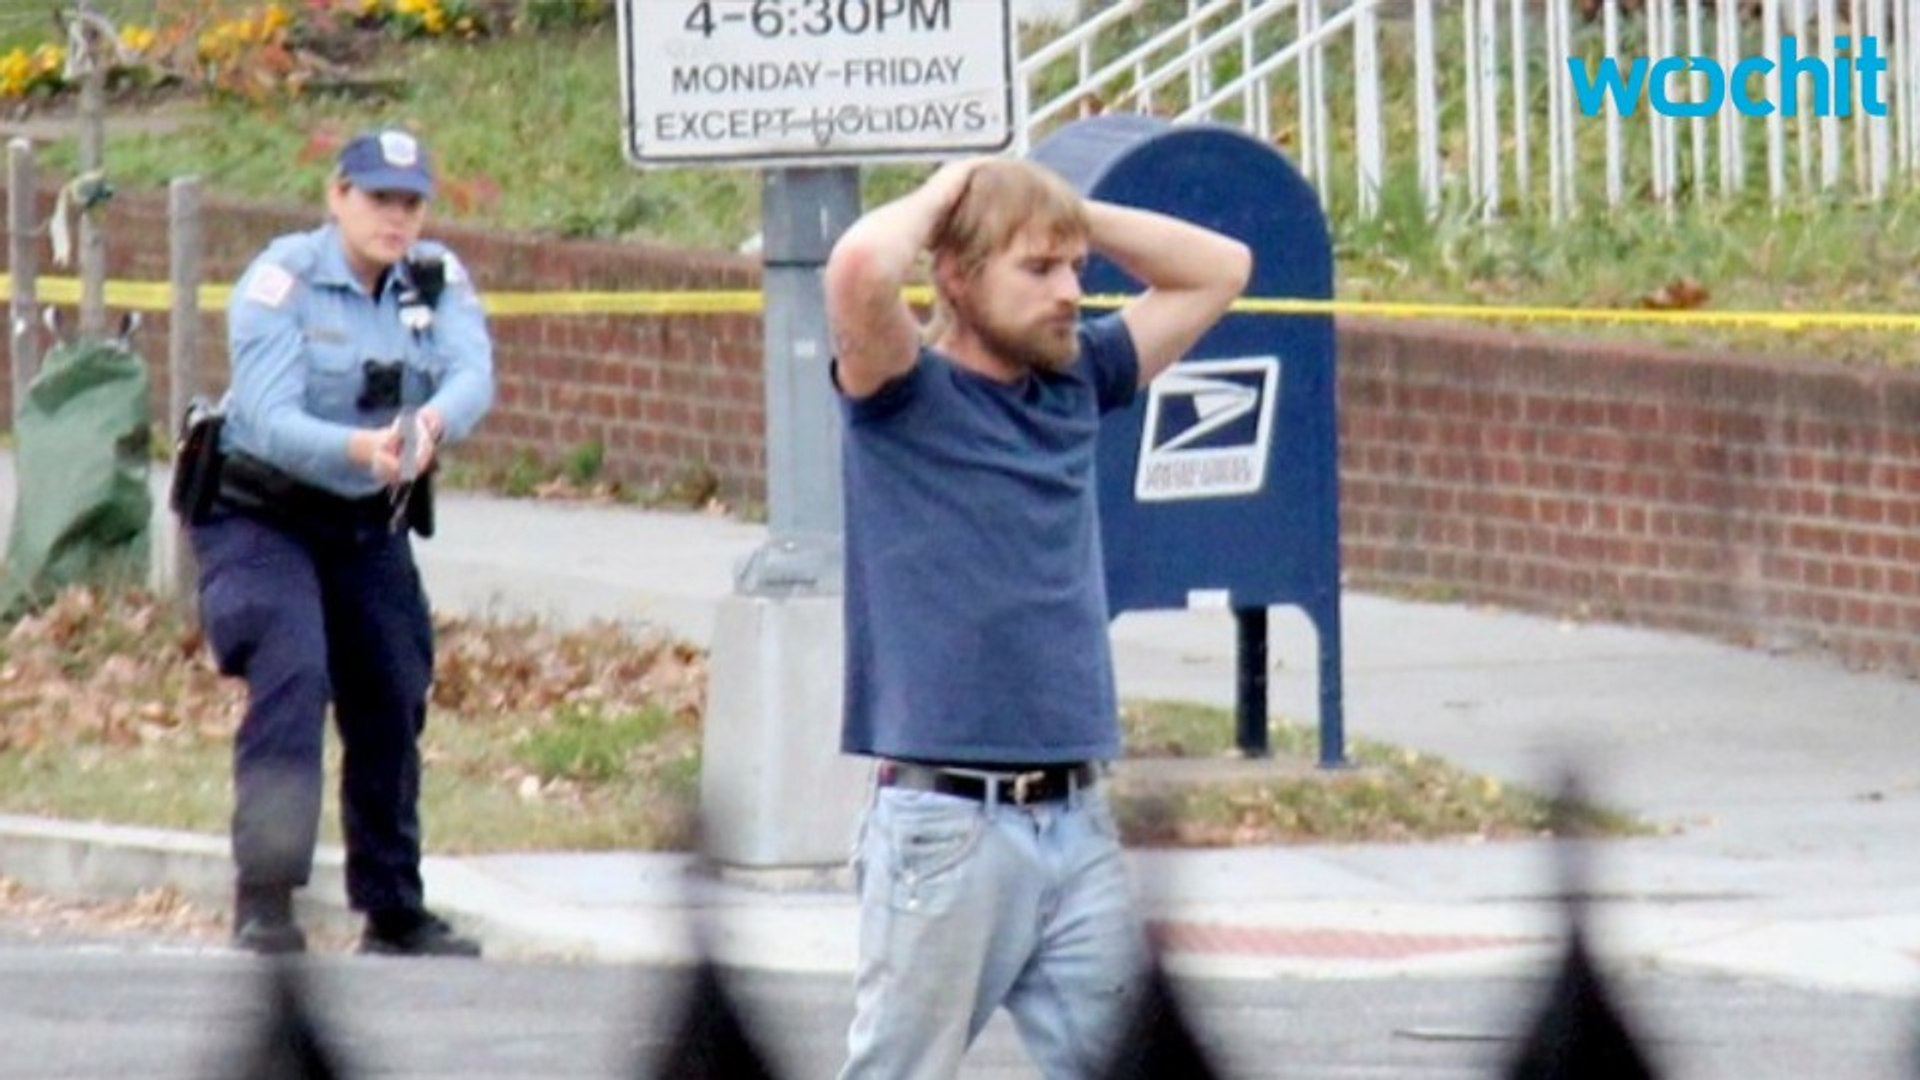 'Pizzagate' Gunman Indicted on Assault & Firearms Charges